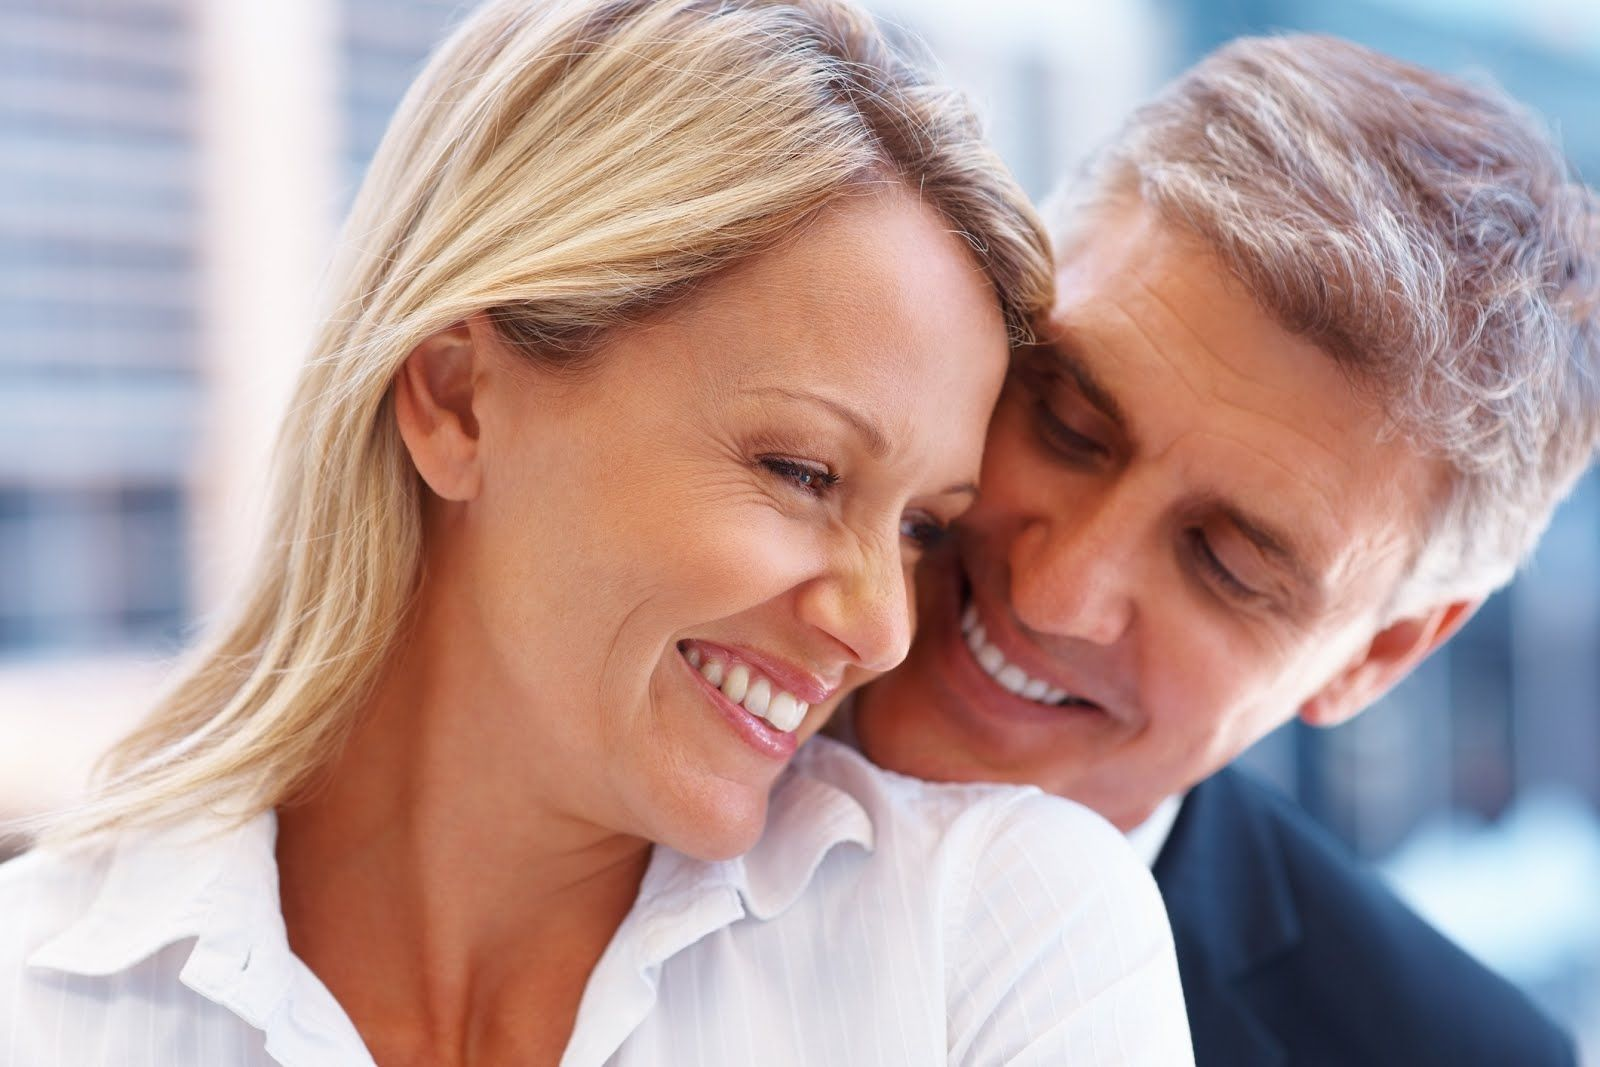 Xpersonals dating visit